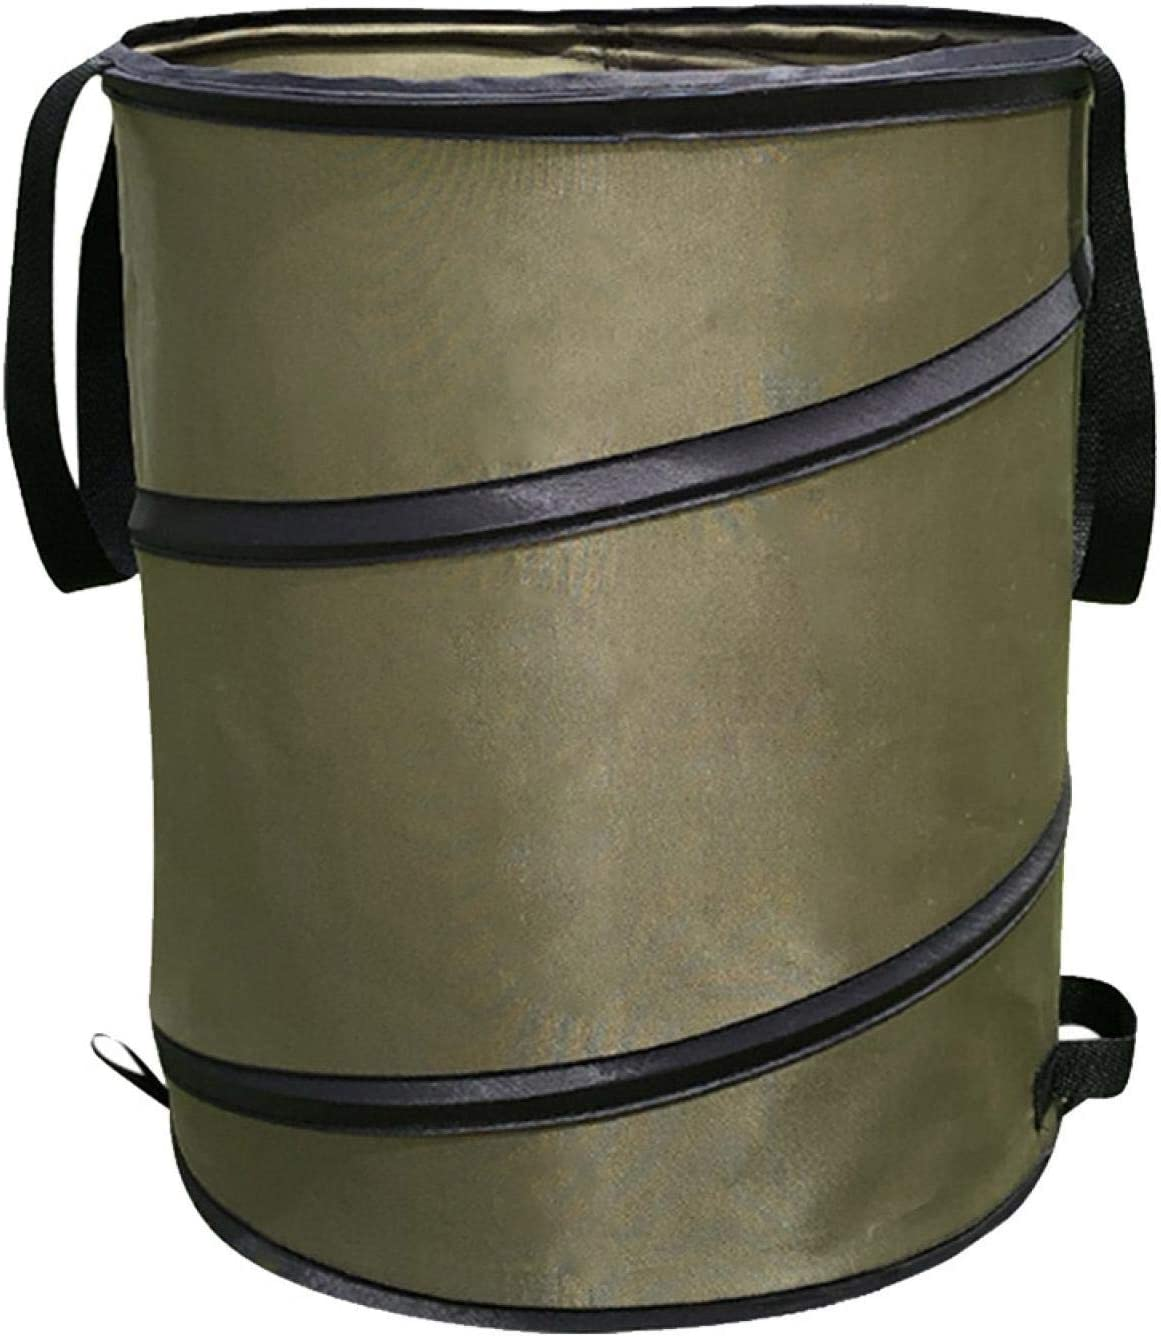 EKDJKK Popular shop is the lowest price challenge Gardening Bag 10 Inexpensive Gallon Release Collapsible Buckle Home C